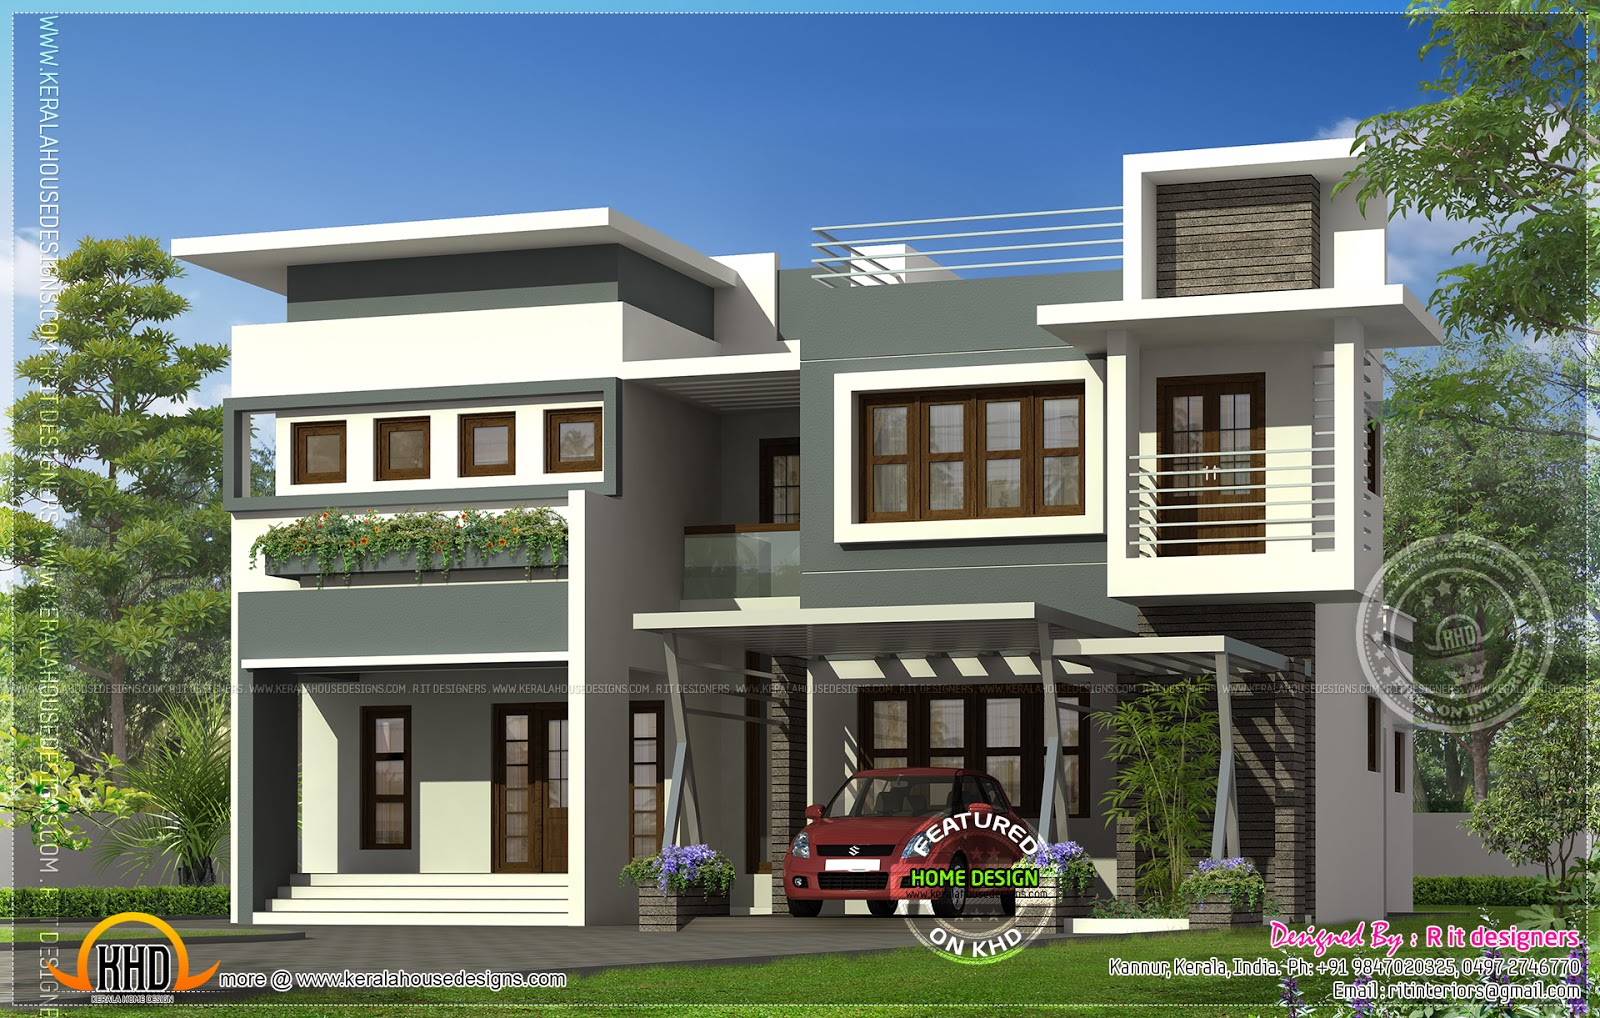 Modern contemporary residence design home kerala plans for Modern home designs plans